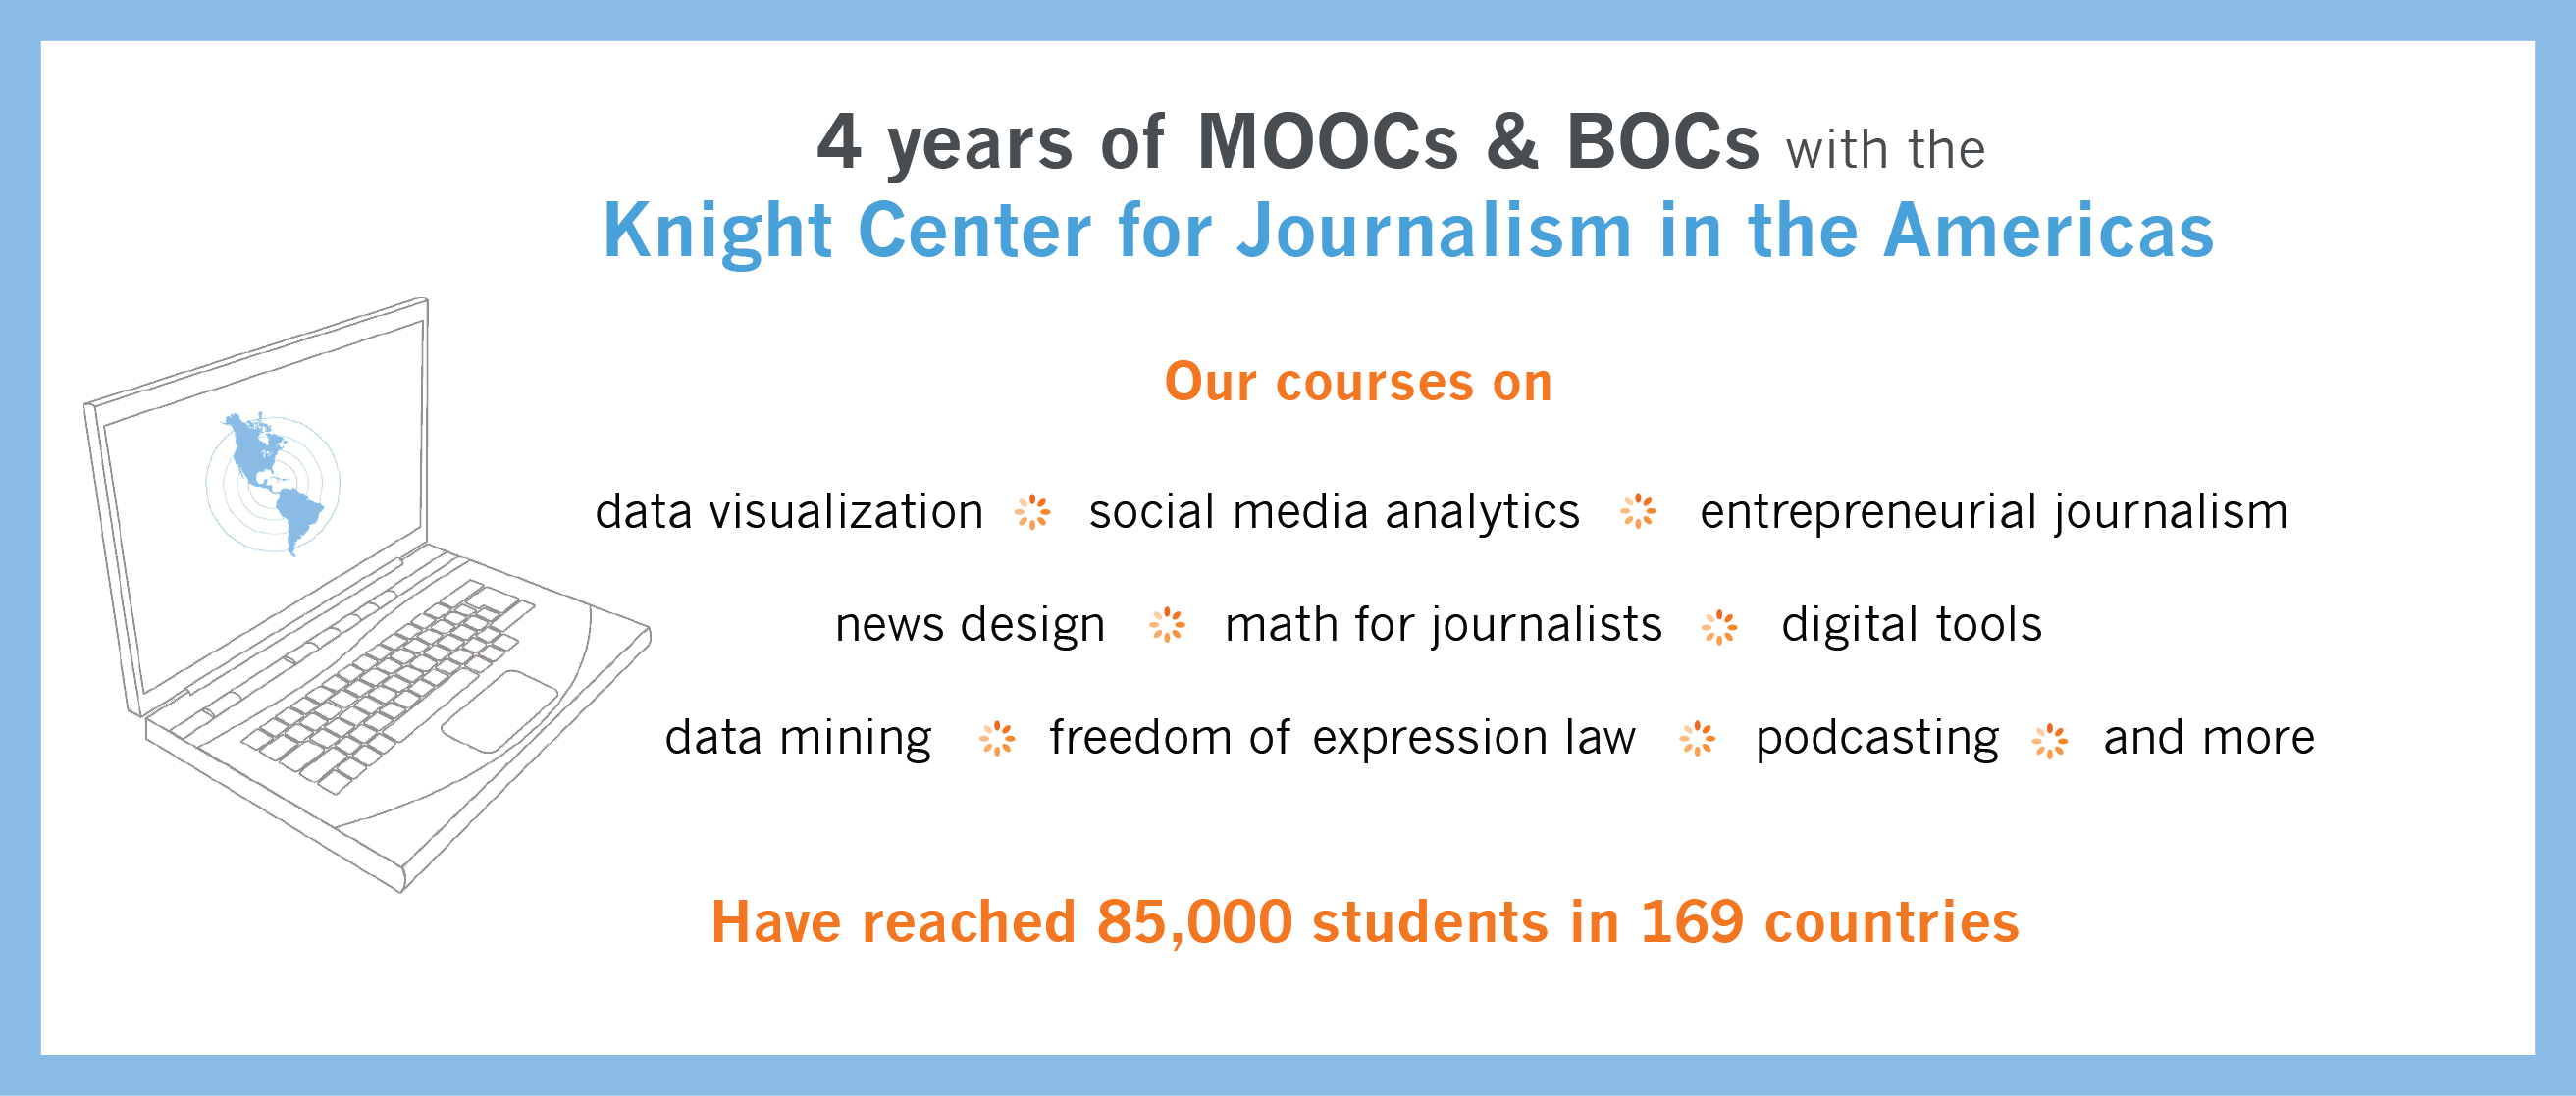 4 Years of MOOC - Knight Center